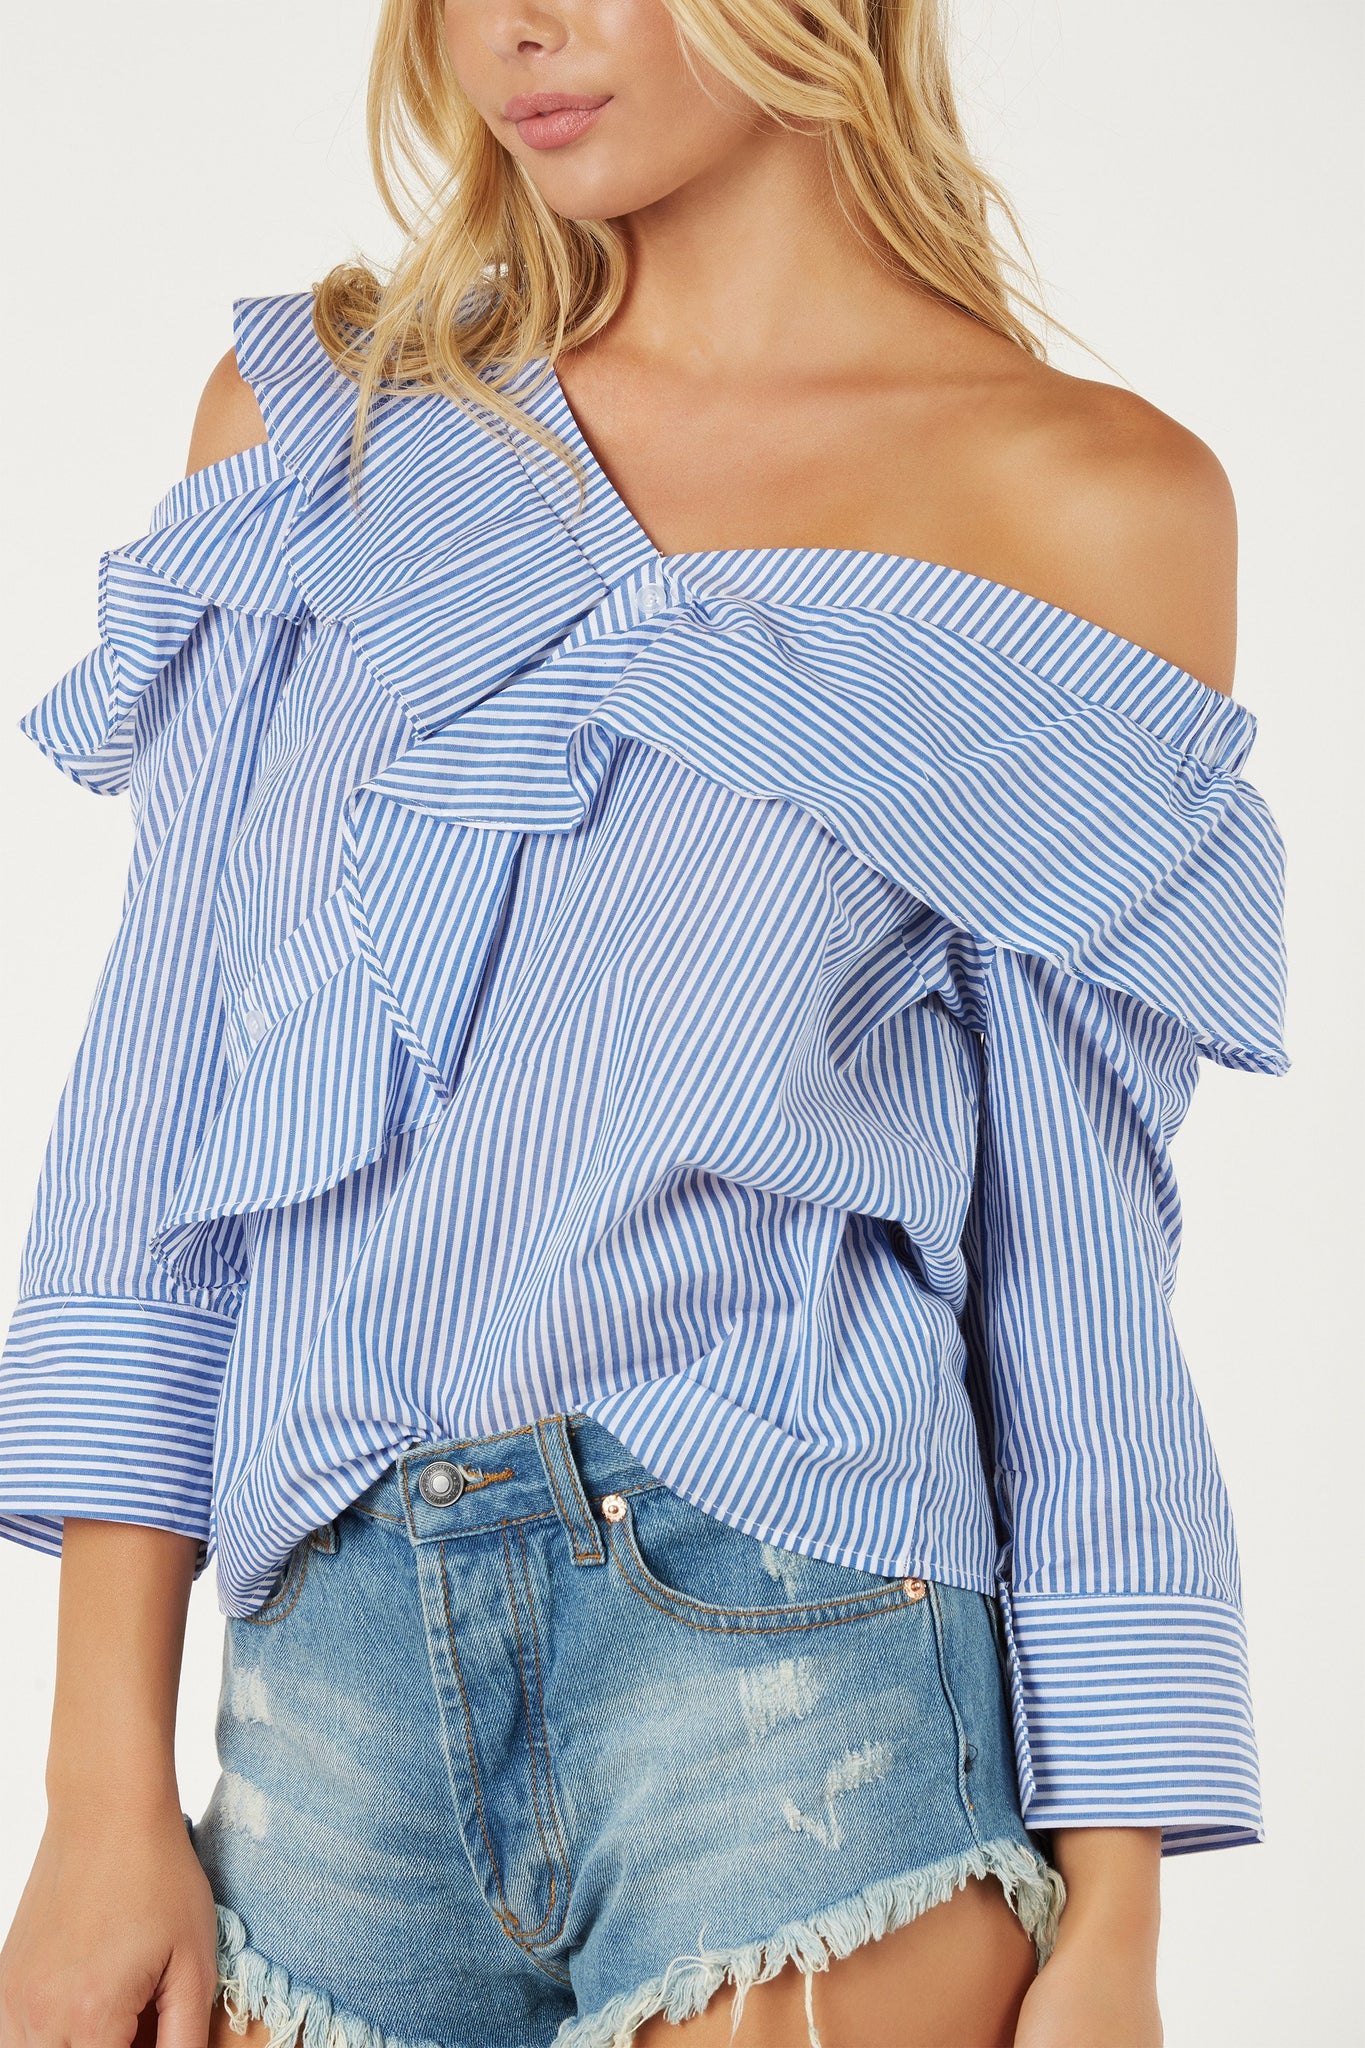 Chic ruffled blouse with faux button detailing. Cold shoulder cut out with pin stripe pattern throughout.